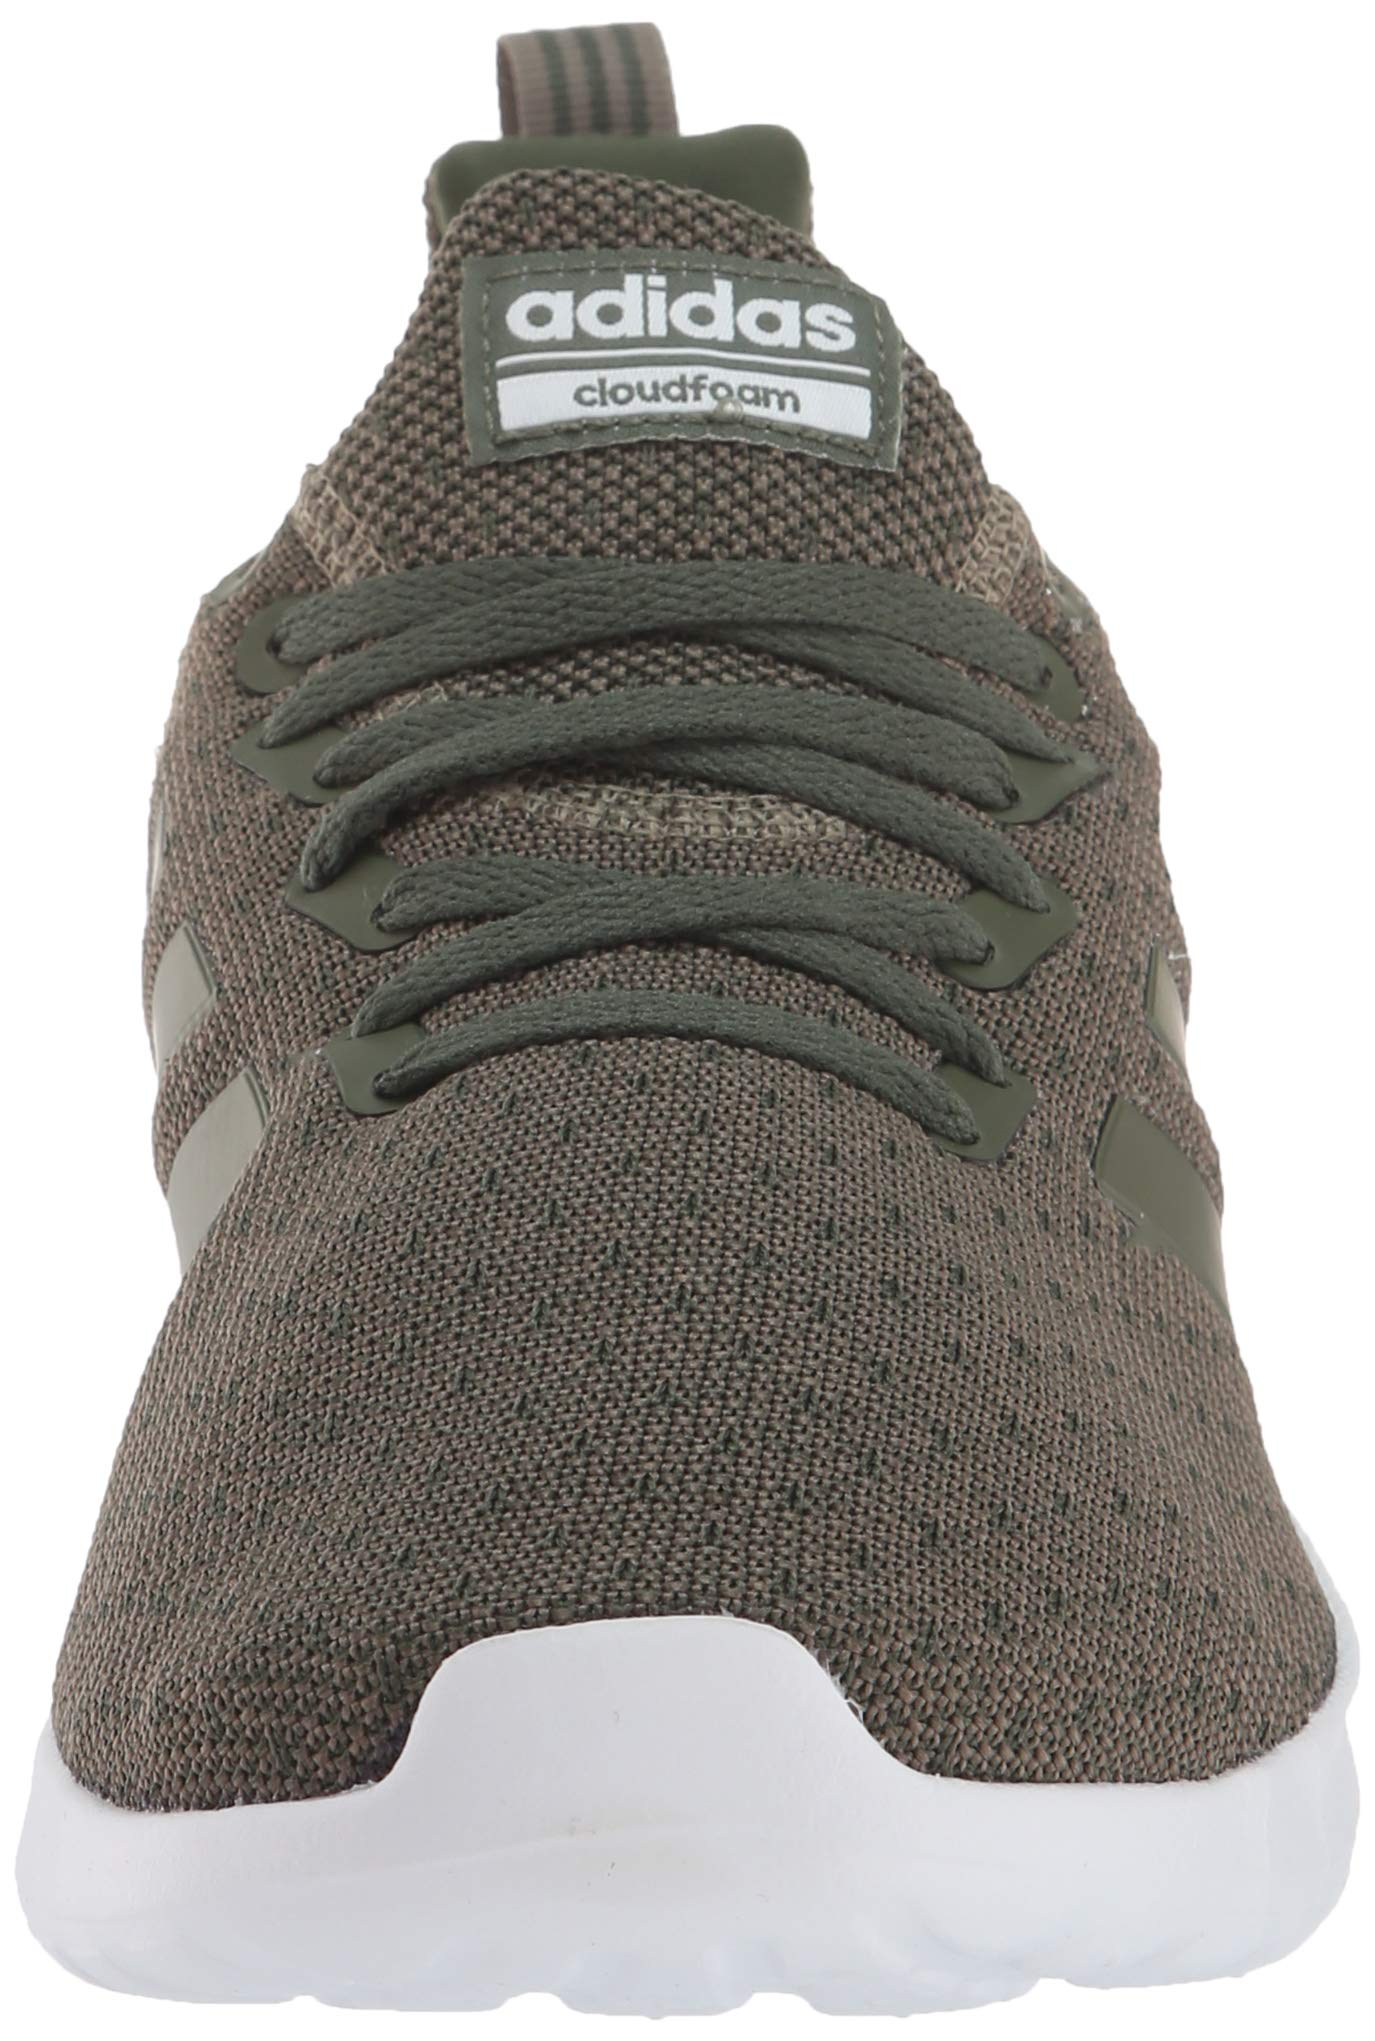 adidas Men's Lite Racer BYD Running Shoe, Trace Cargo/Base Green/White, 10 M US by adidas (Image #4)